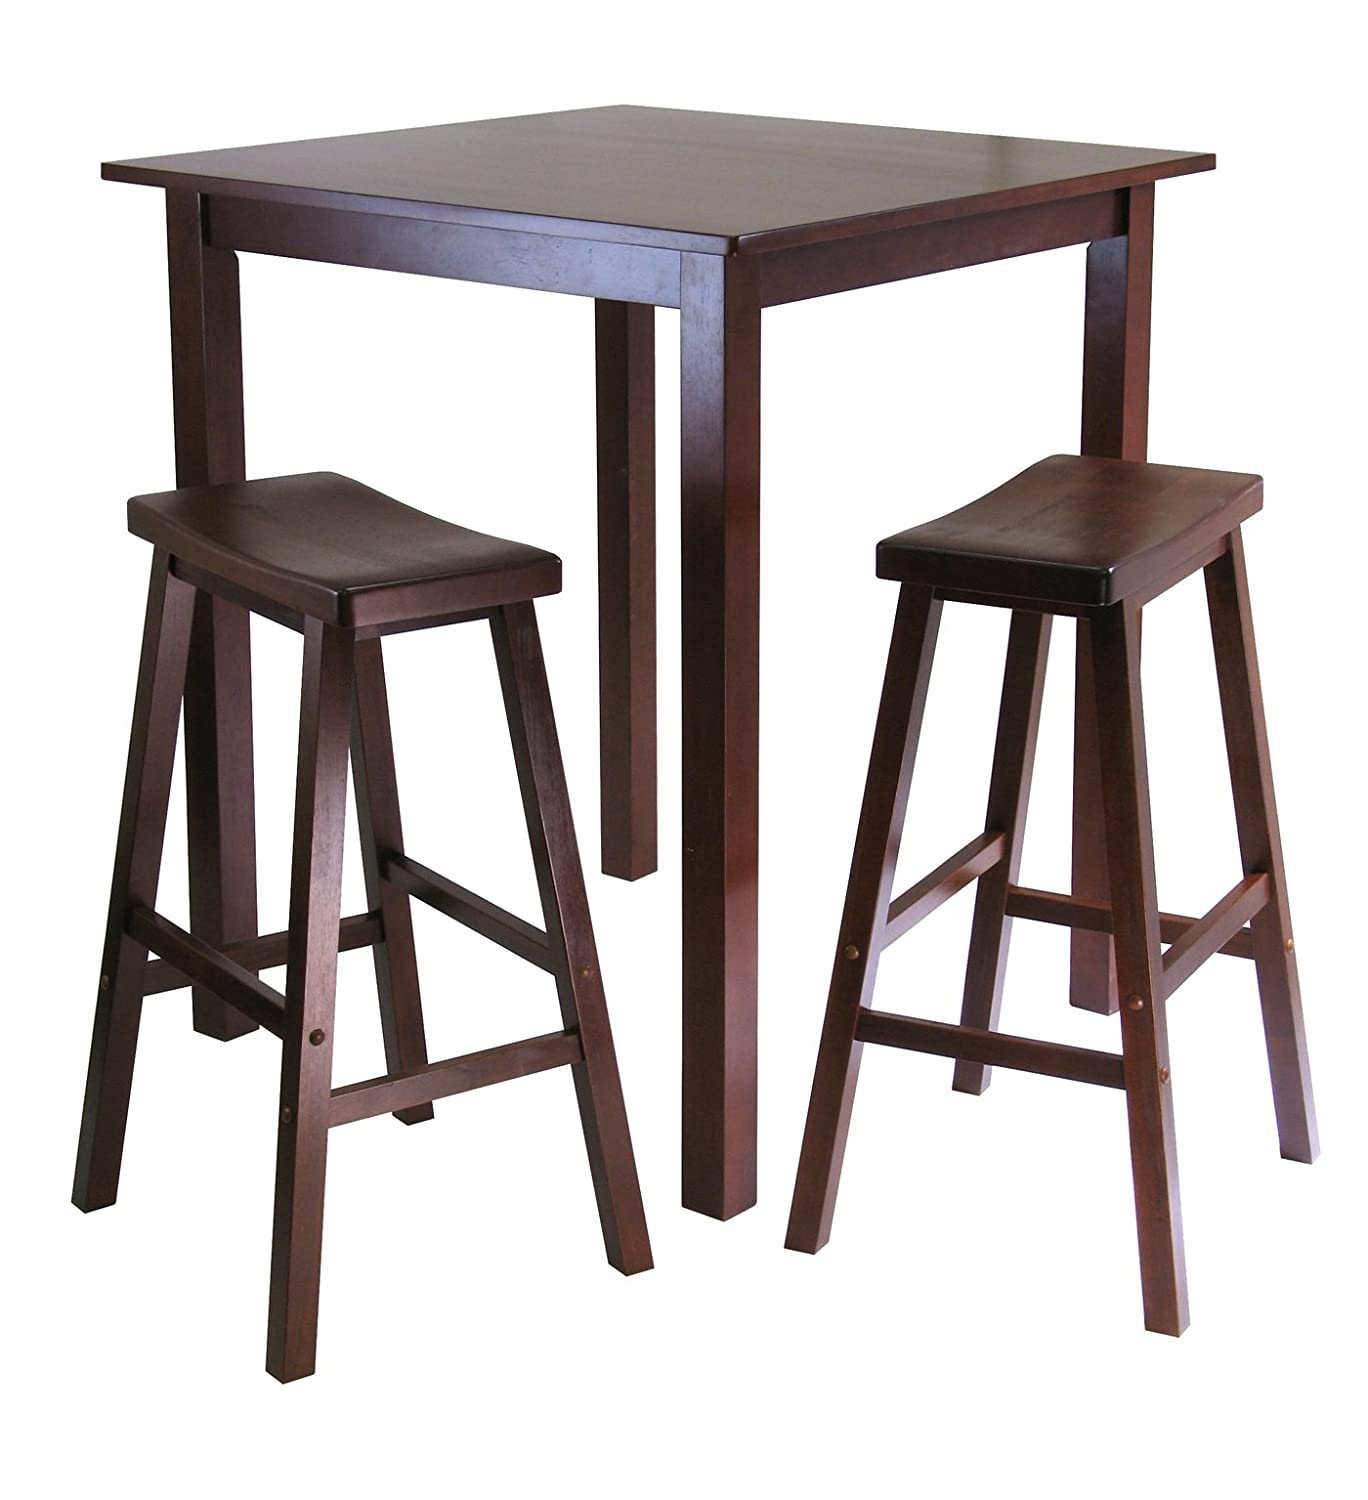 Amazon.com: Winsome's Parkland 3-Piece Square High/Pub Table Set ...